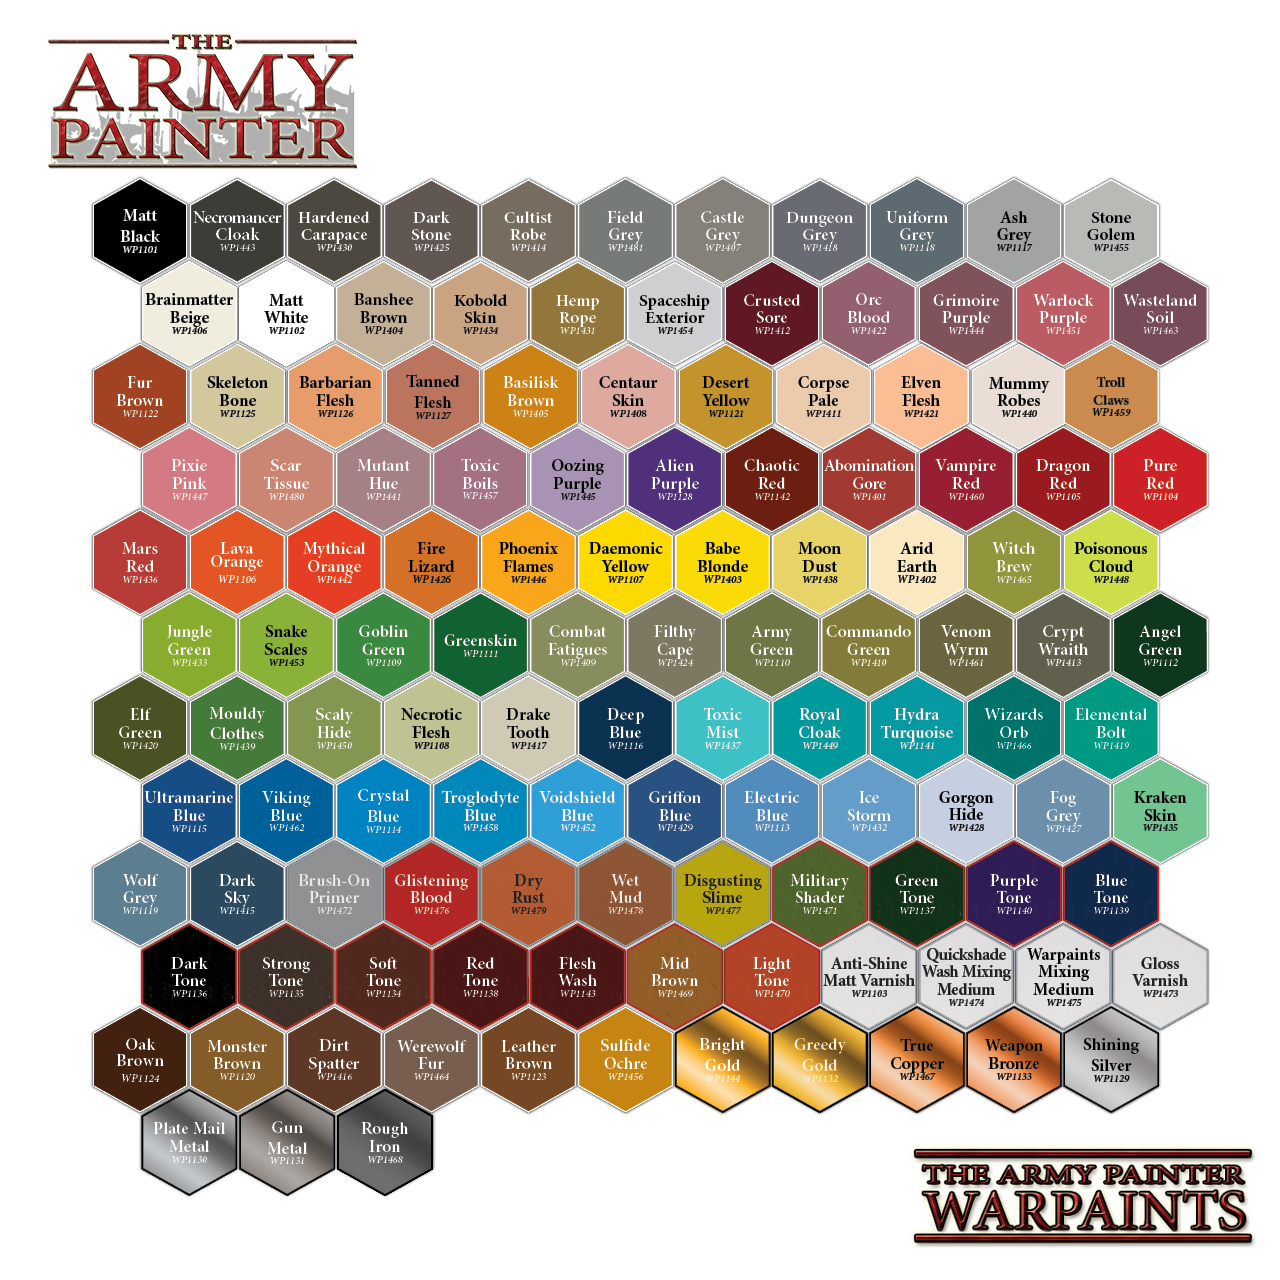 Warpaints: Shining Silver | Davis Cards & Games